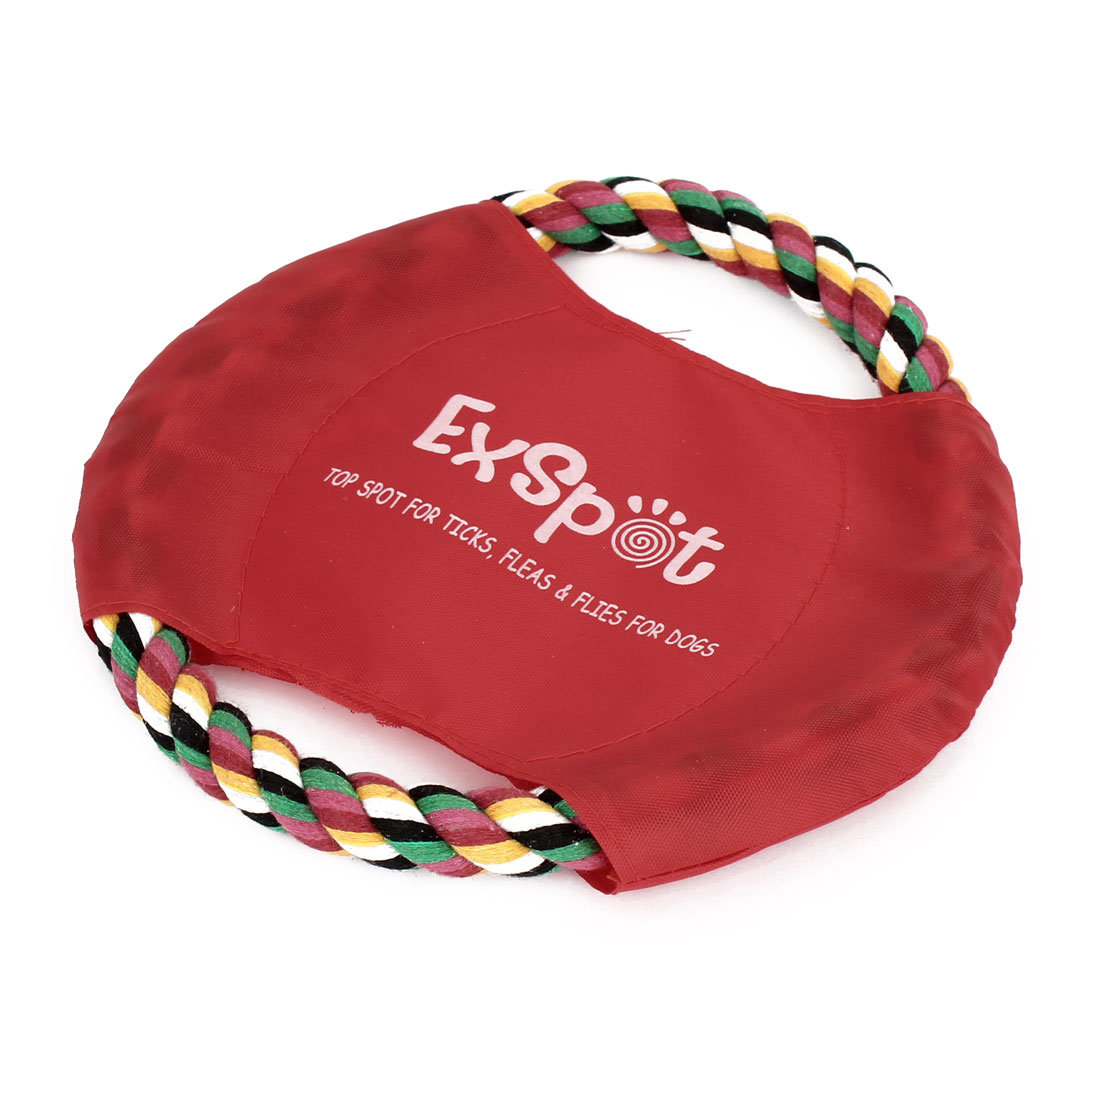 18cm Diameter Braided Cotton Rope Pet Doggie Training Frisbee Colorful